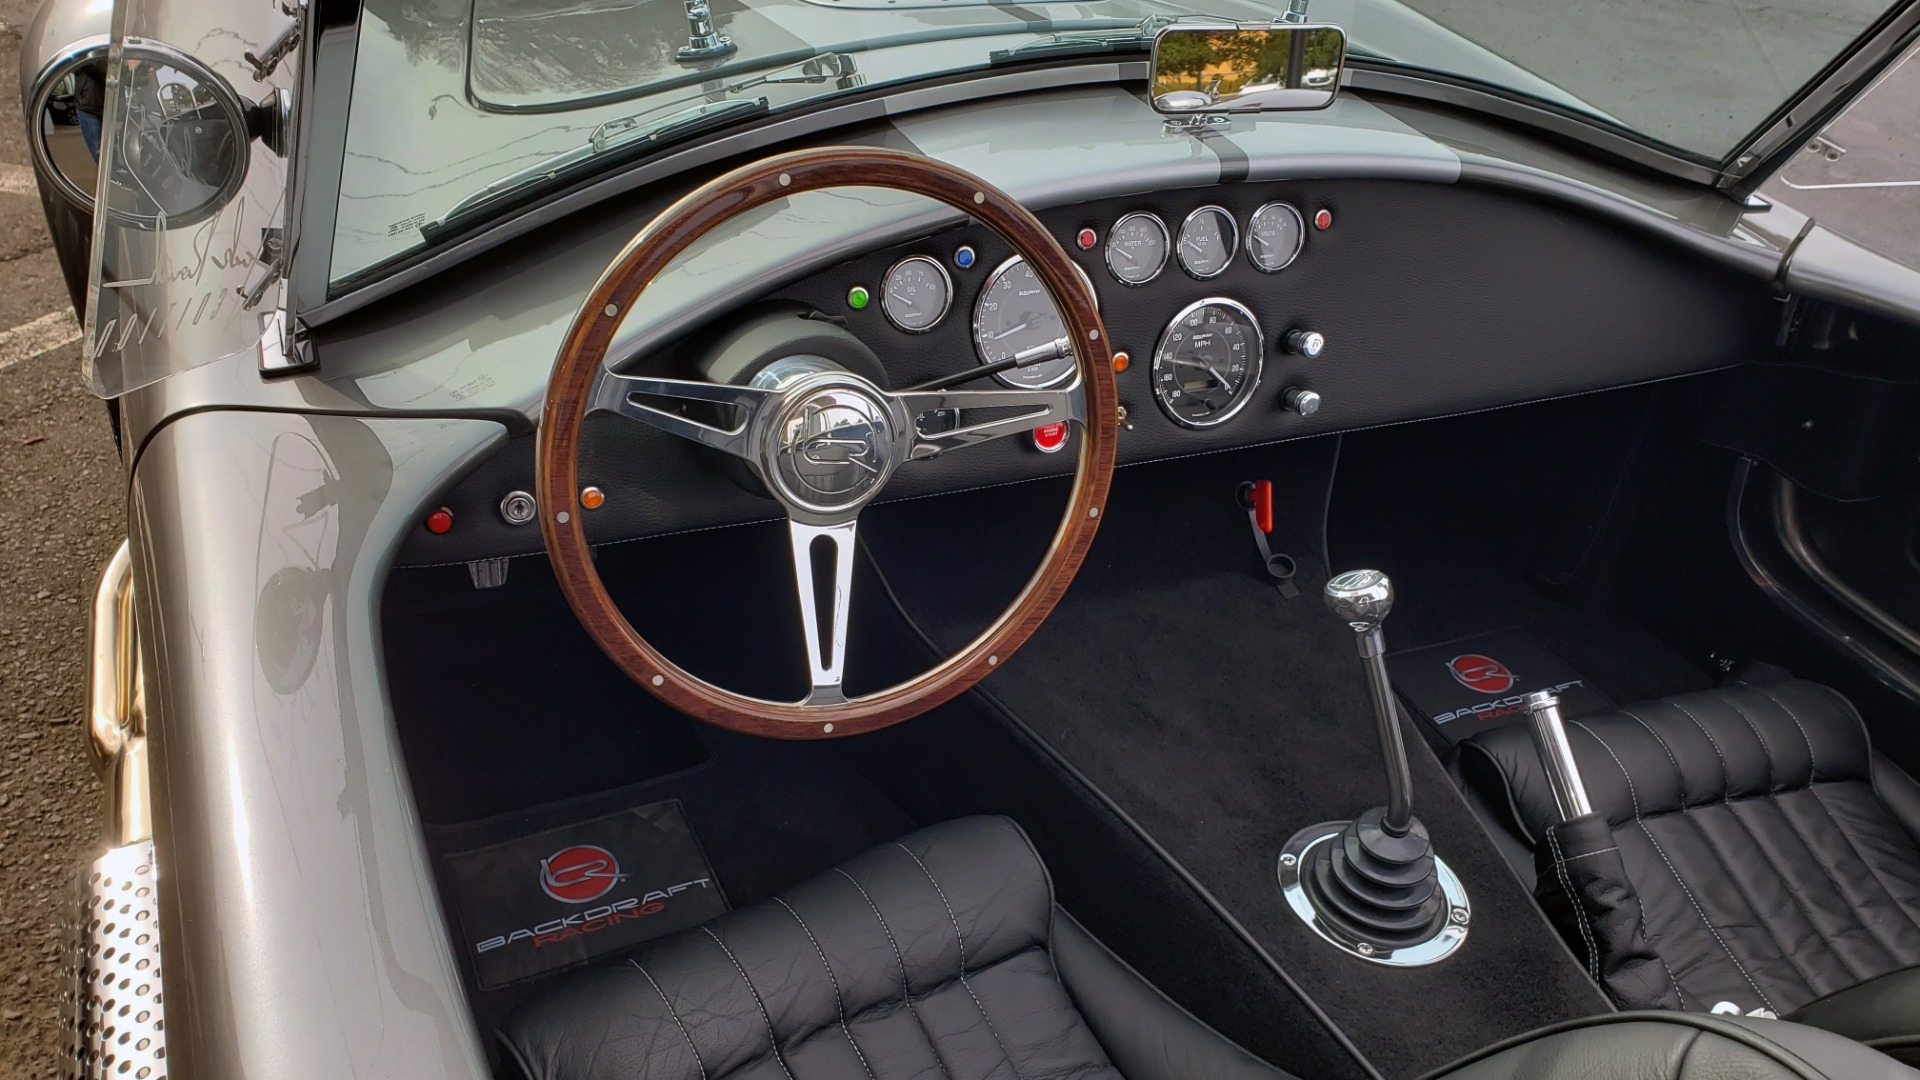 Used 1965 Ford Cobra 427 BACKDRAFT ROADSTER for sale Sold at Formula Imports in Charlotte NC 28227 9